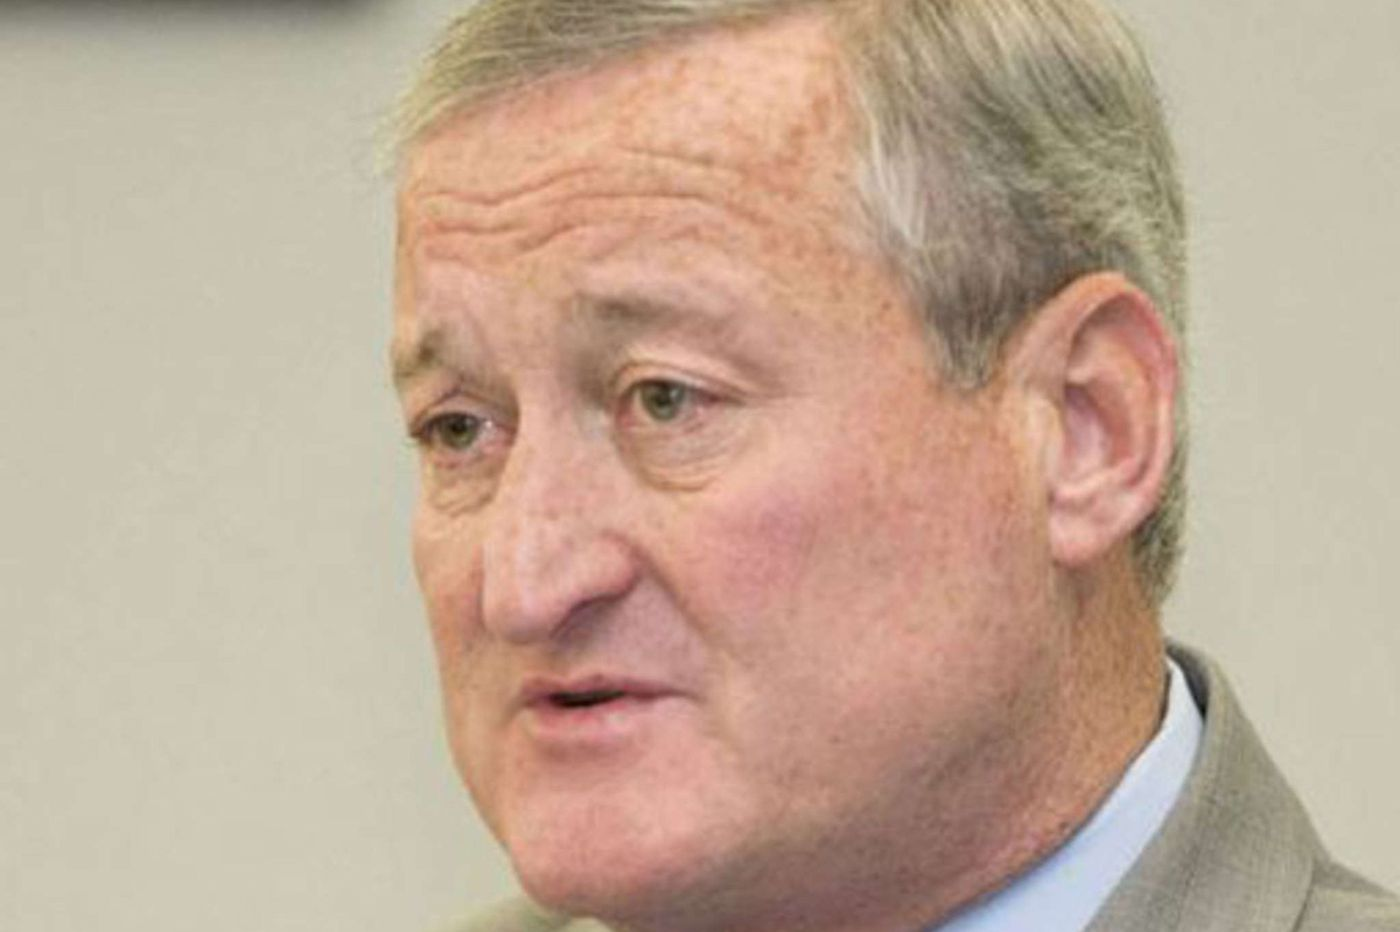 Comcast warns of costly legal battle if Kenney doesn't veto wage discrimination bill